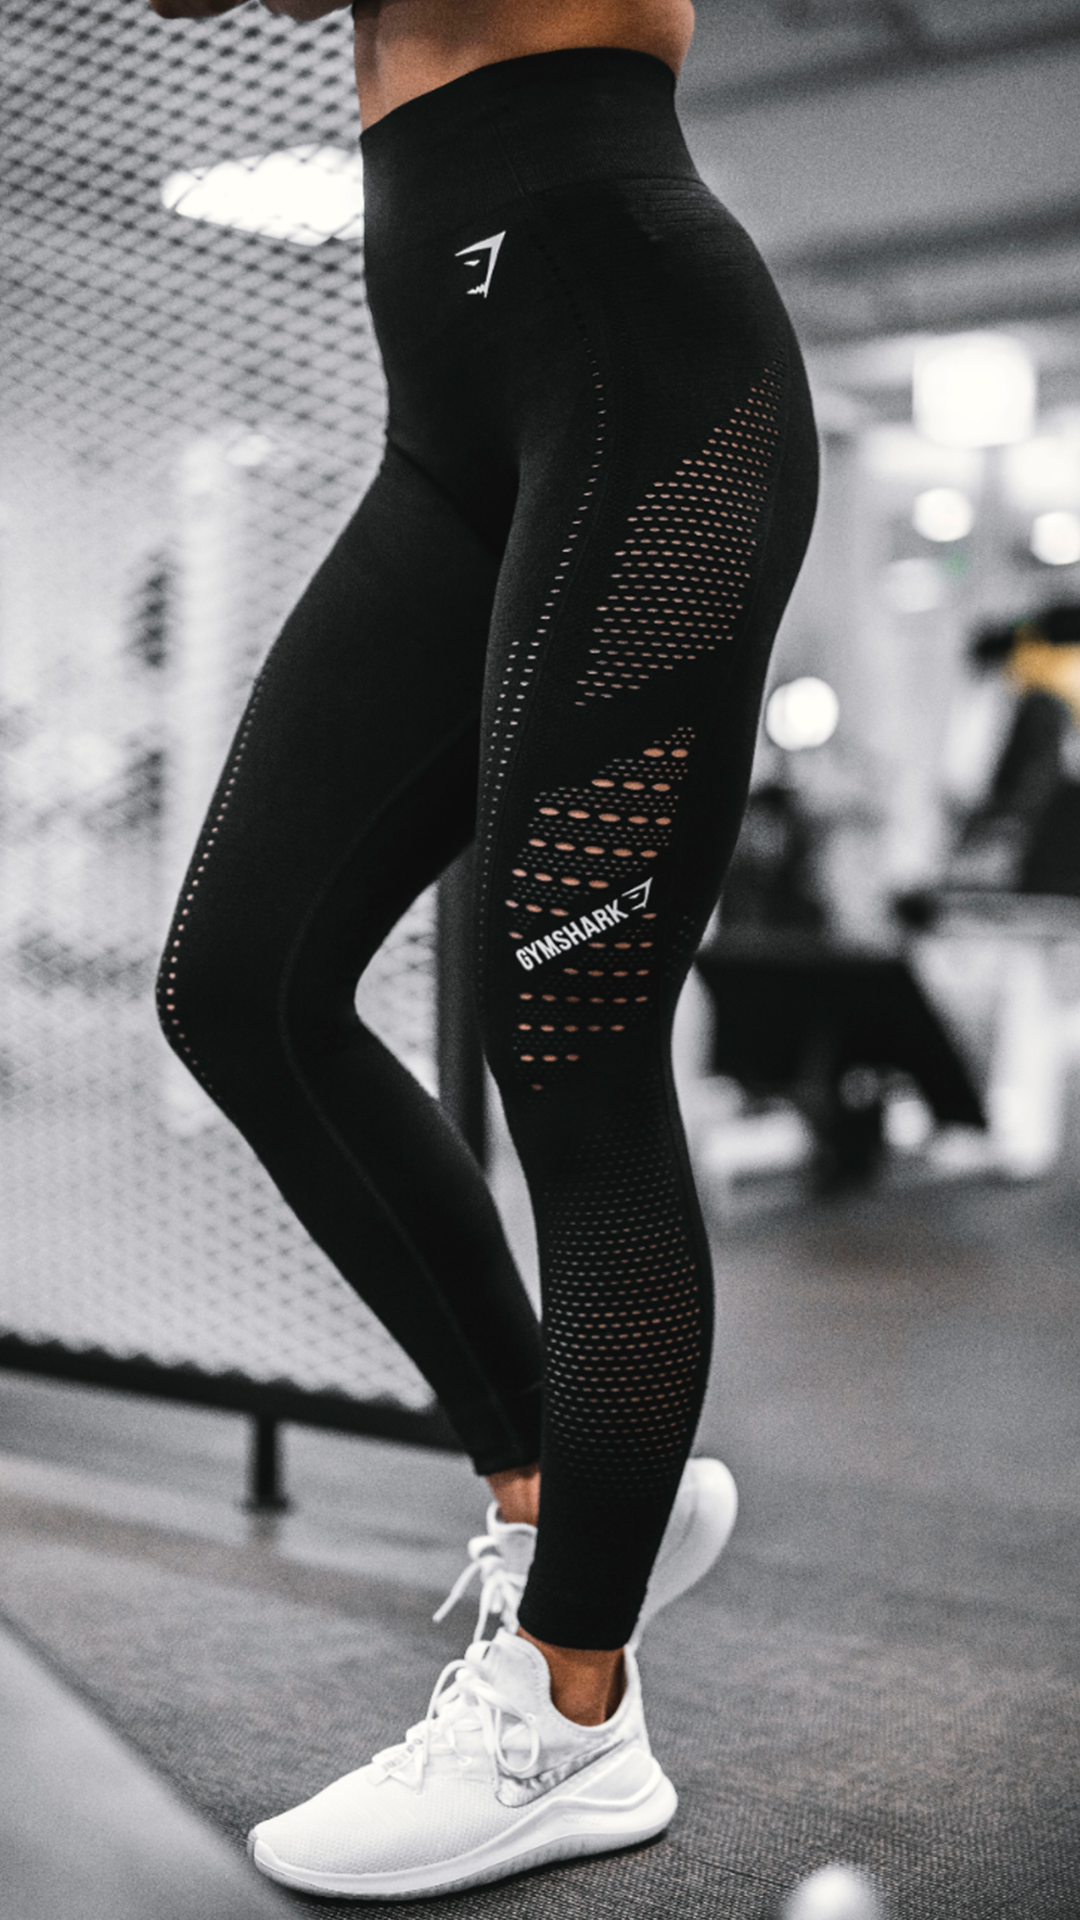 8dcb3fa7ccd8d6 Gymshark Flawless Knit Tights - Black in 2019 | Aesthetics *✭˚・゚ ...